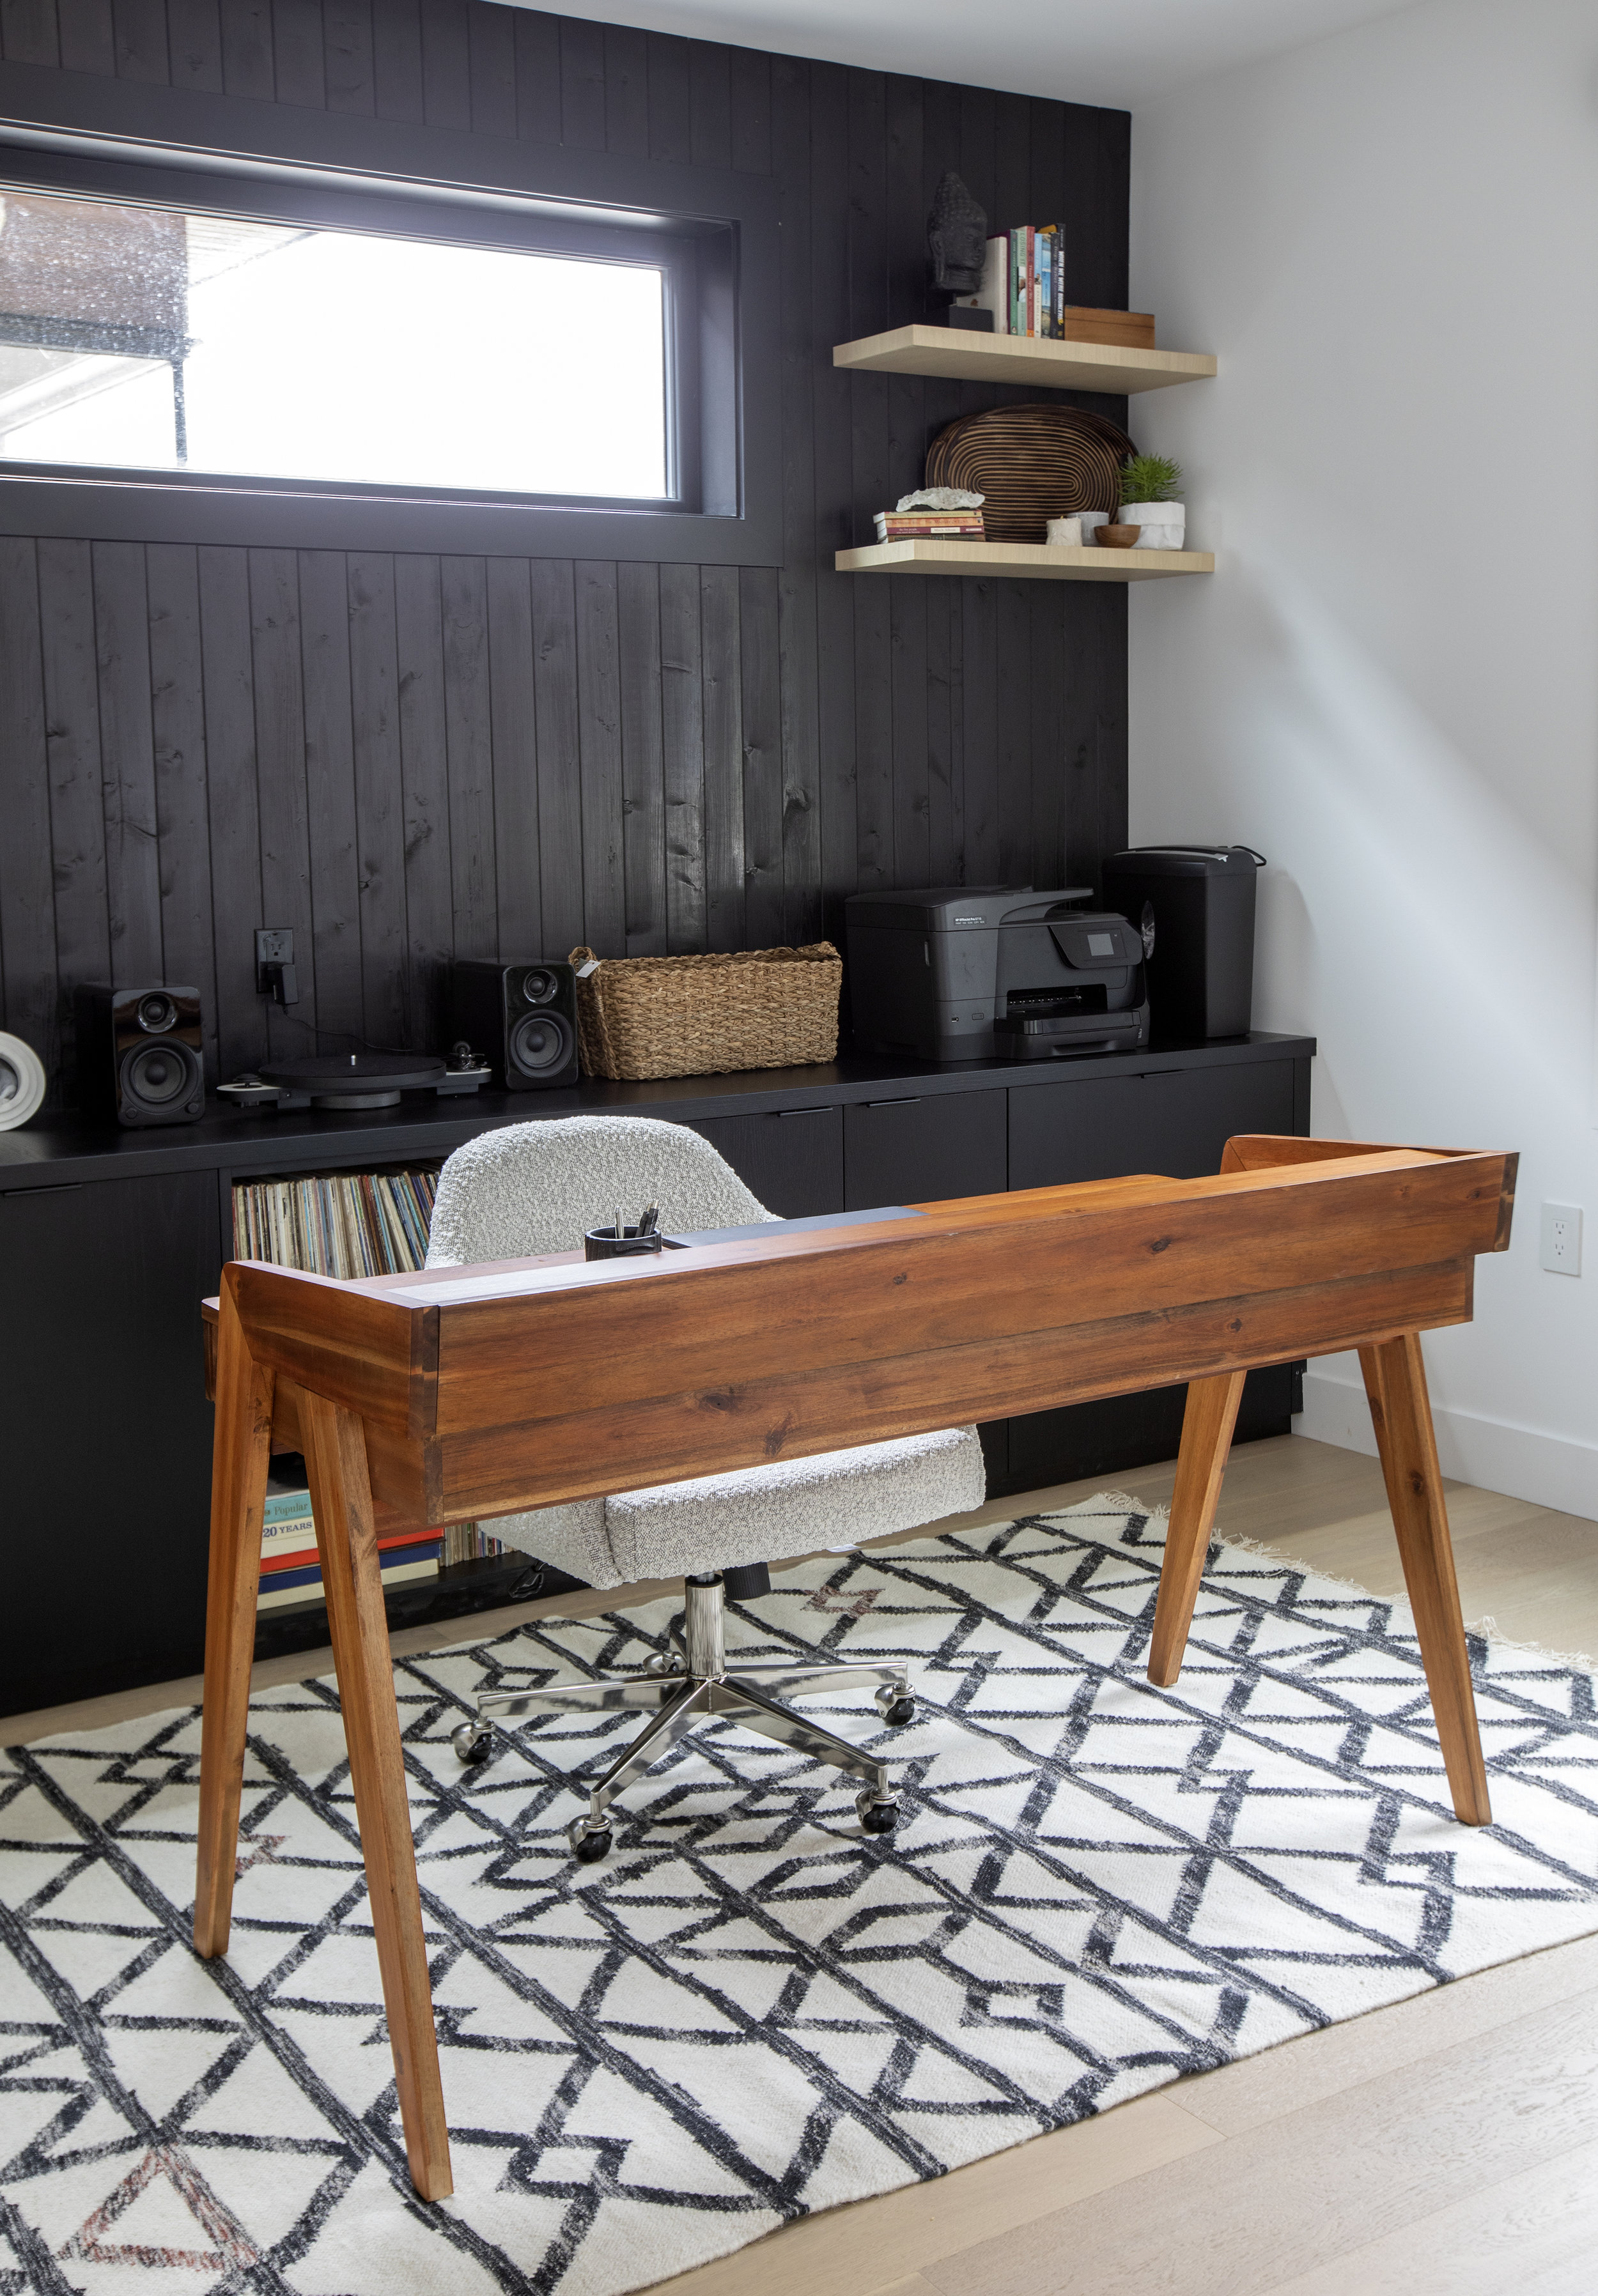 The wooden writing desk in East 13th Street sits on top of a black and white geometric rug.